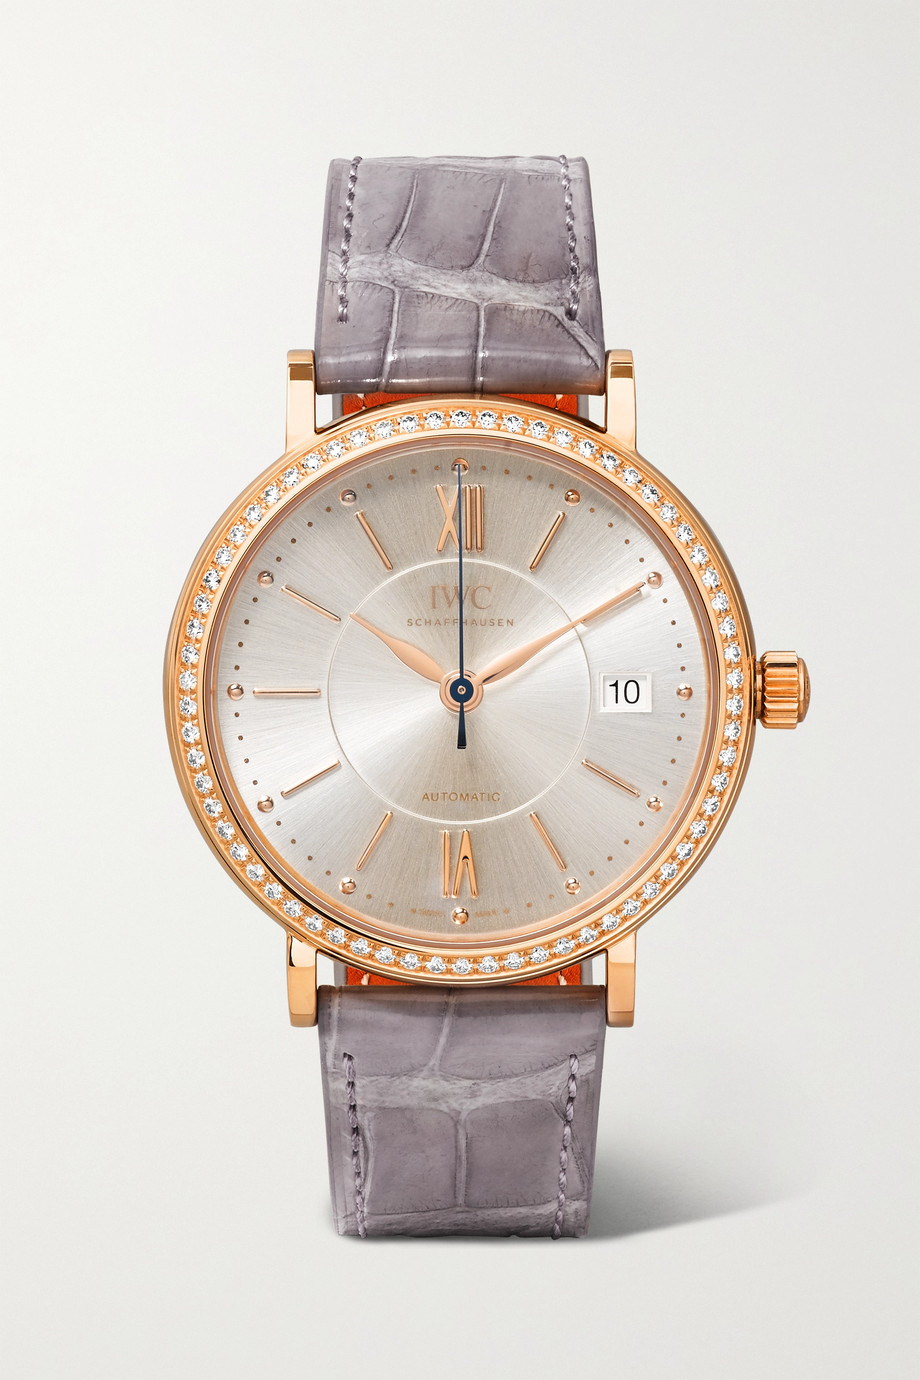 IWC SCHAFFHAUSEN Portofino Automatic 37mm 18-karat red gold, alligator and diamond watch